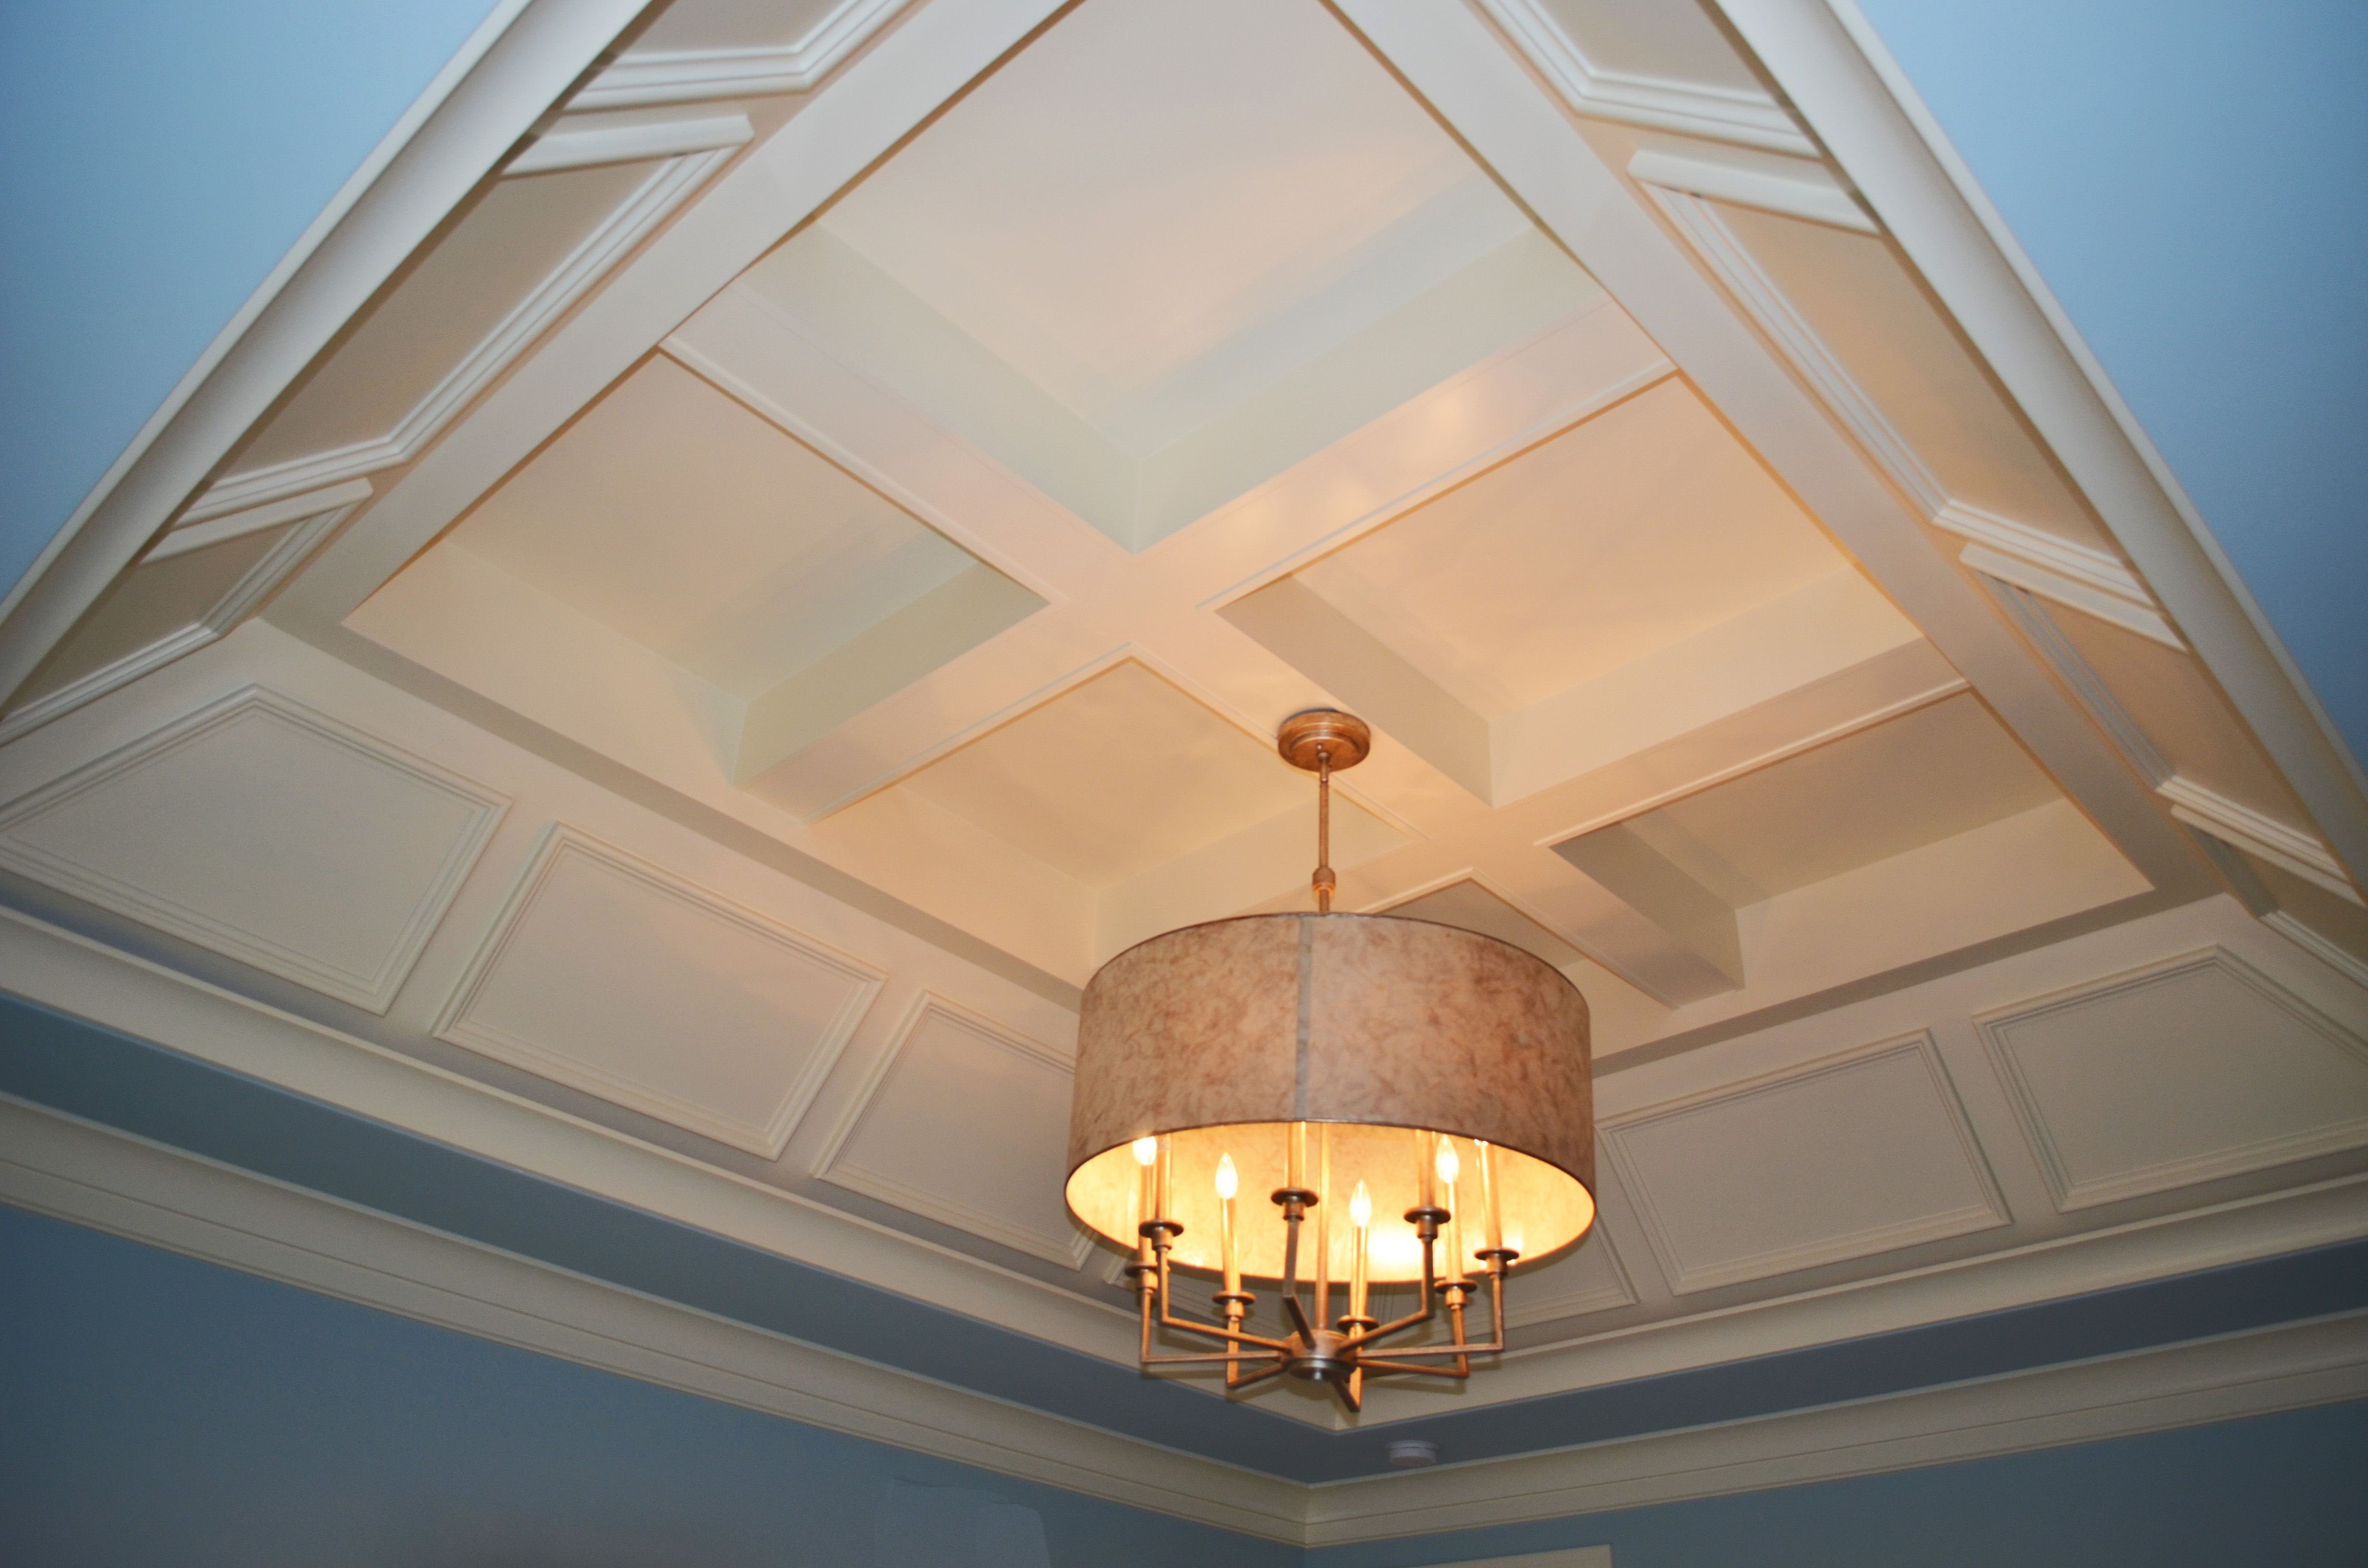 Specialty Ceiling In Andrea Ii Sloped Hip Tray With Wainscotting